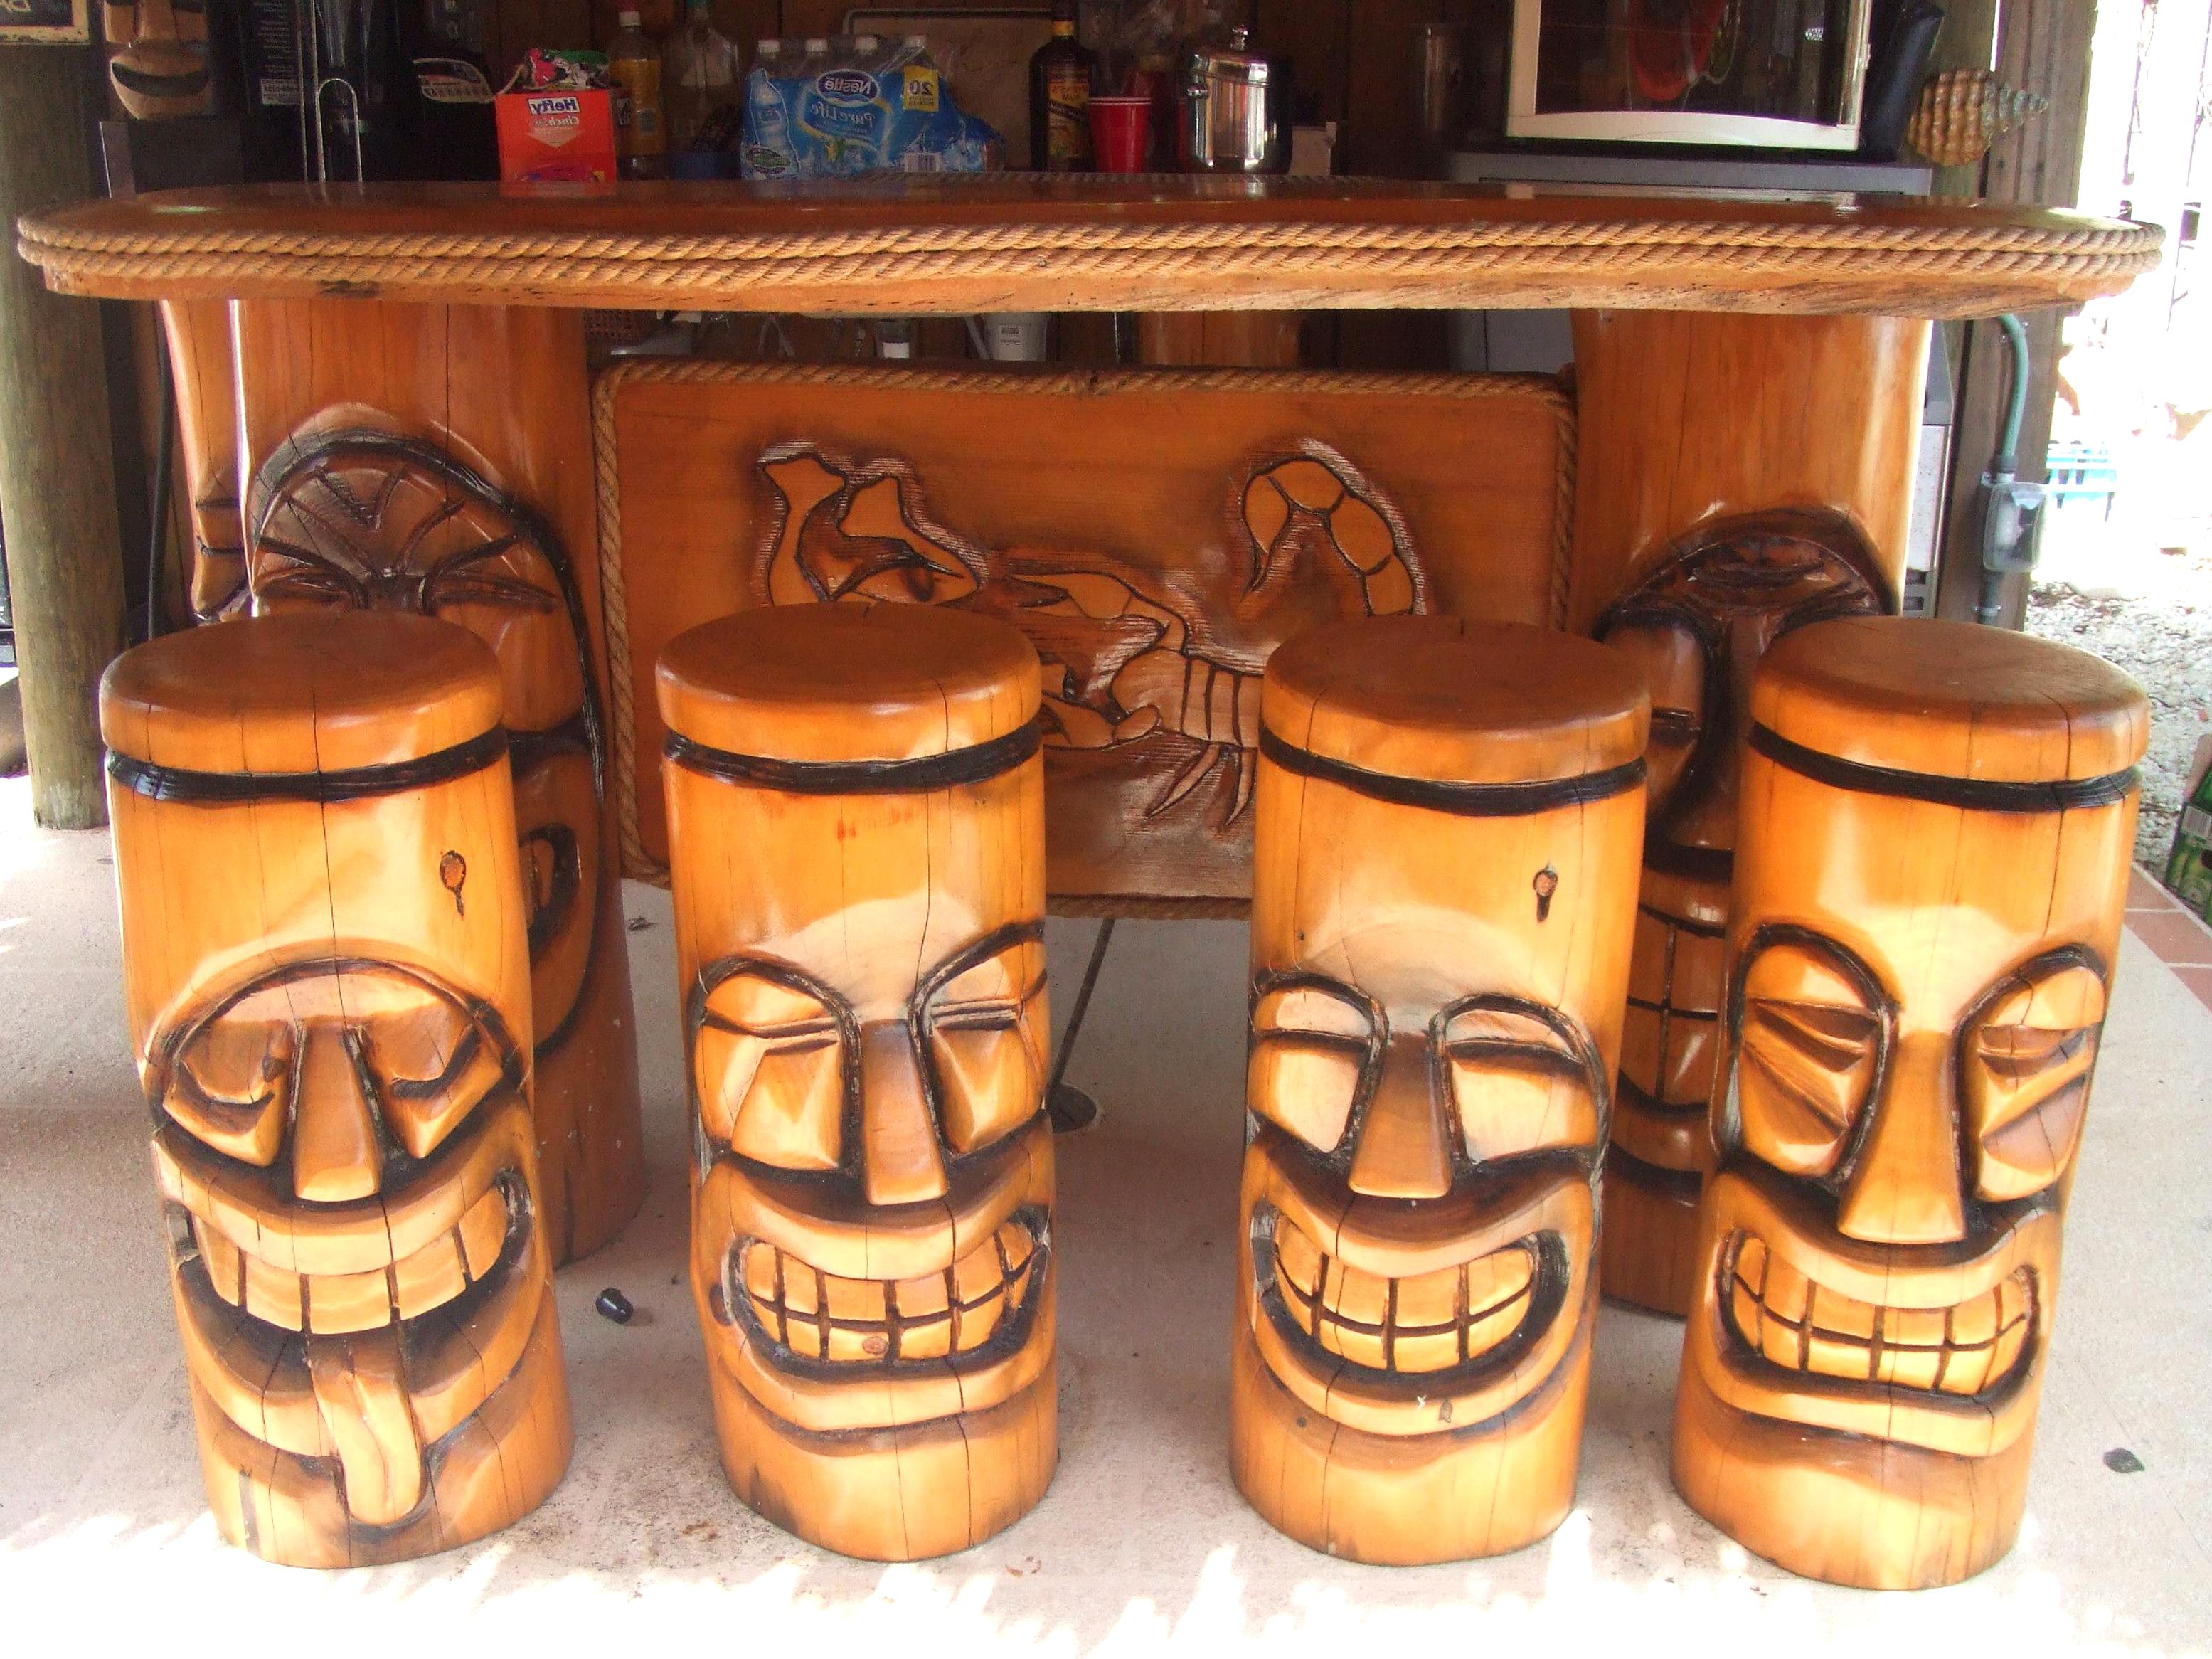 Superb Tiki Bar Stools For Sale Compare 68 Second Hand Ads Customarchery Wood Chair Design Ideas Customarcherynet